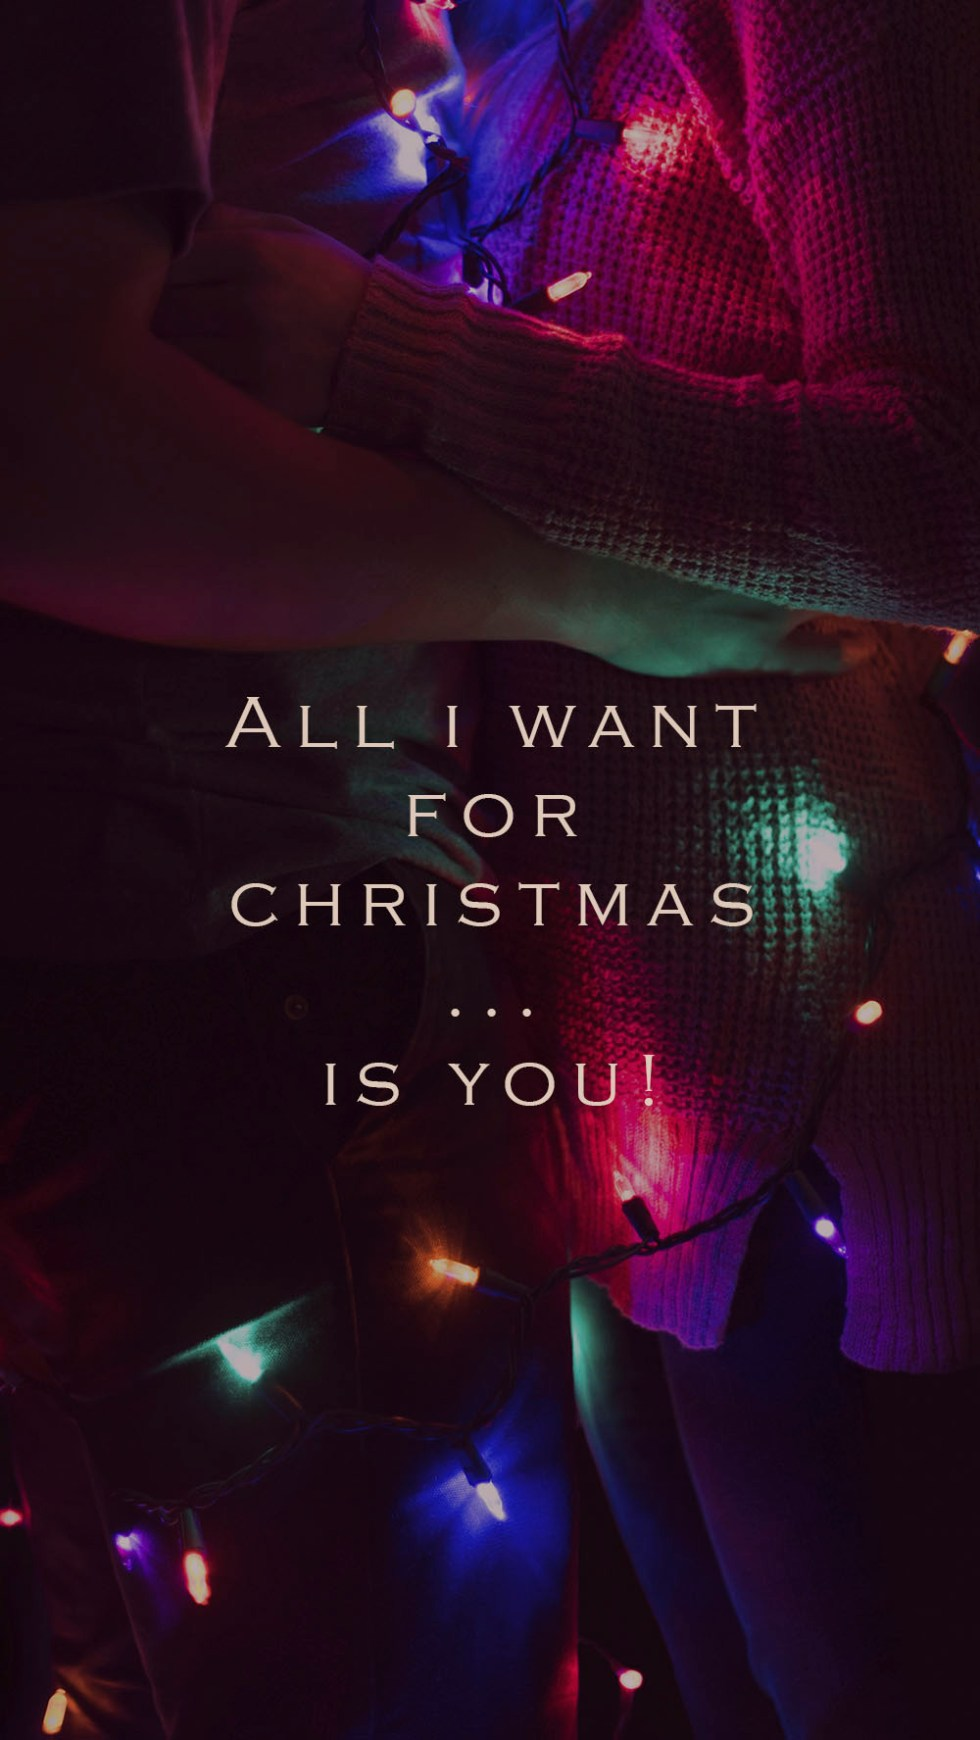 all i want for christmas is you love couple lights